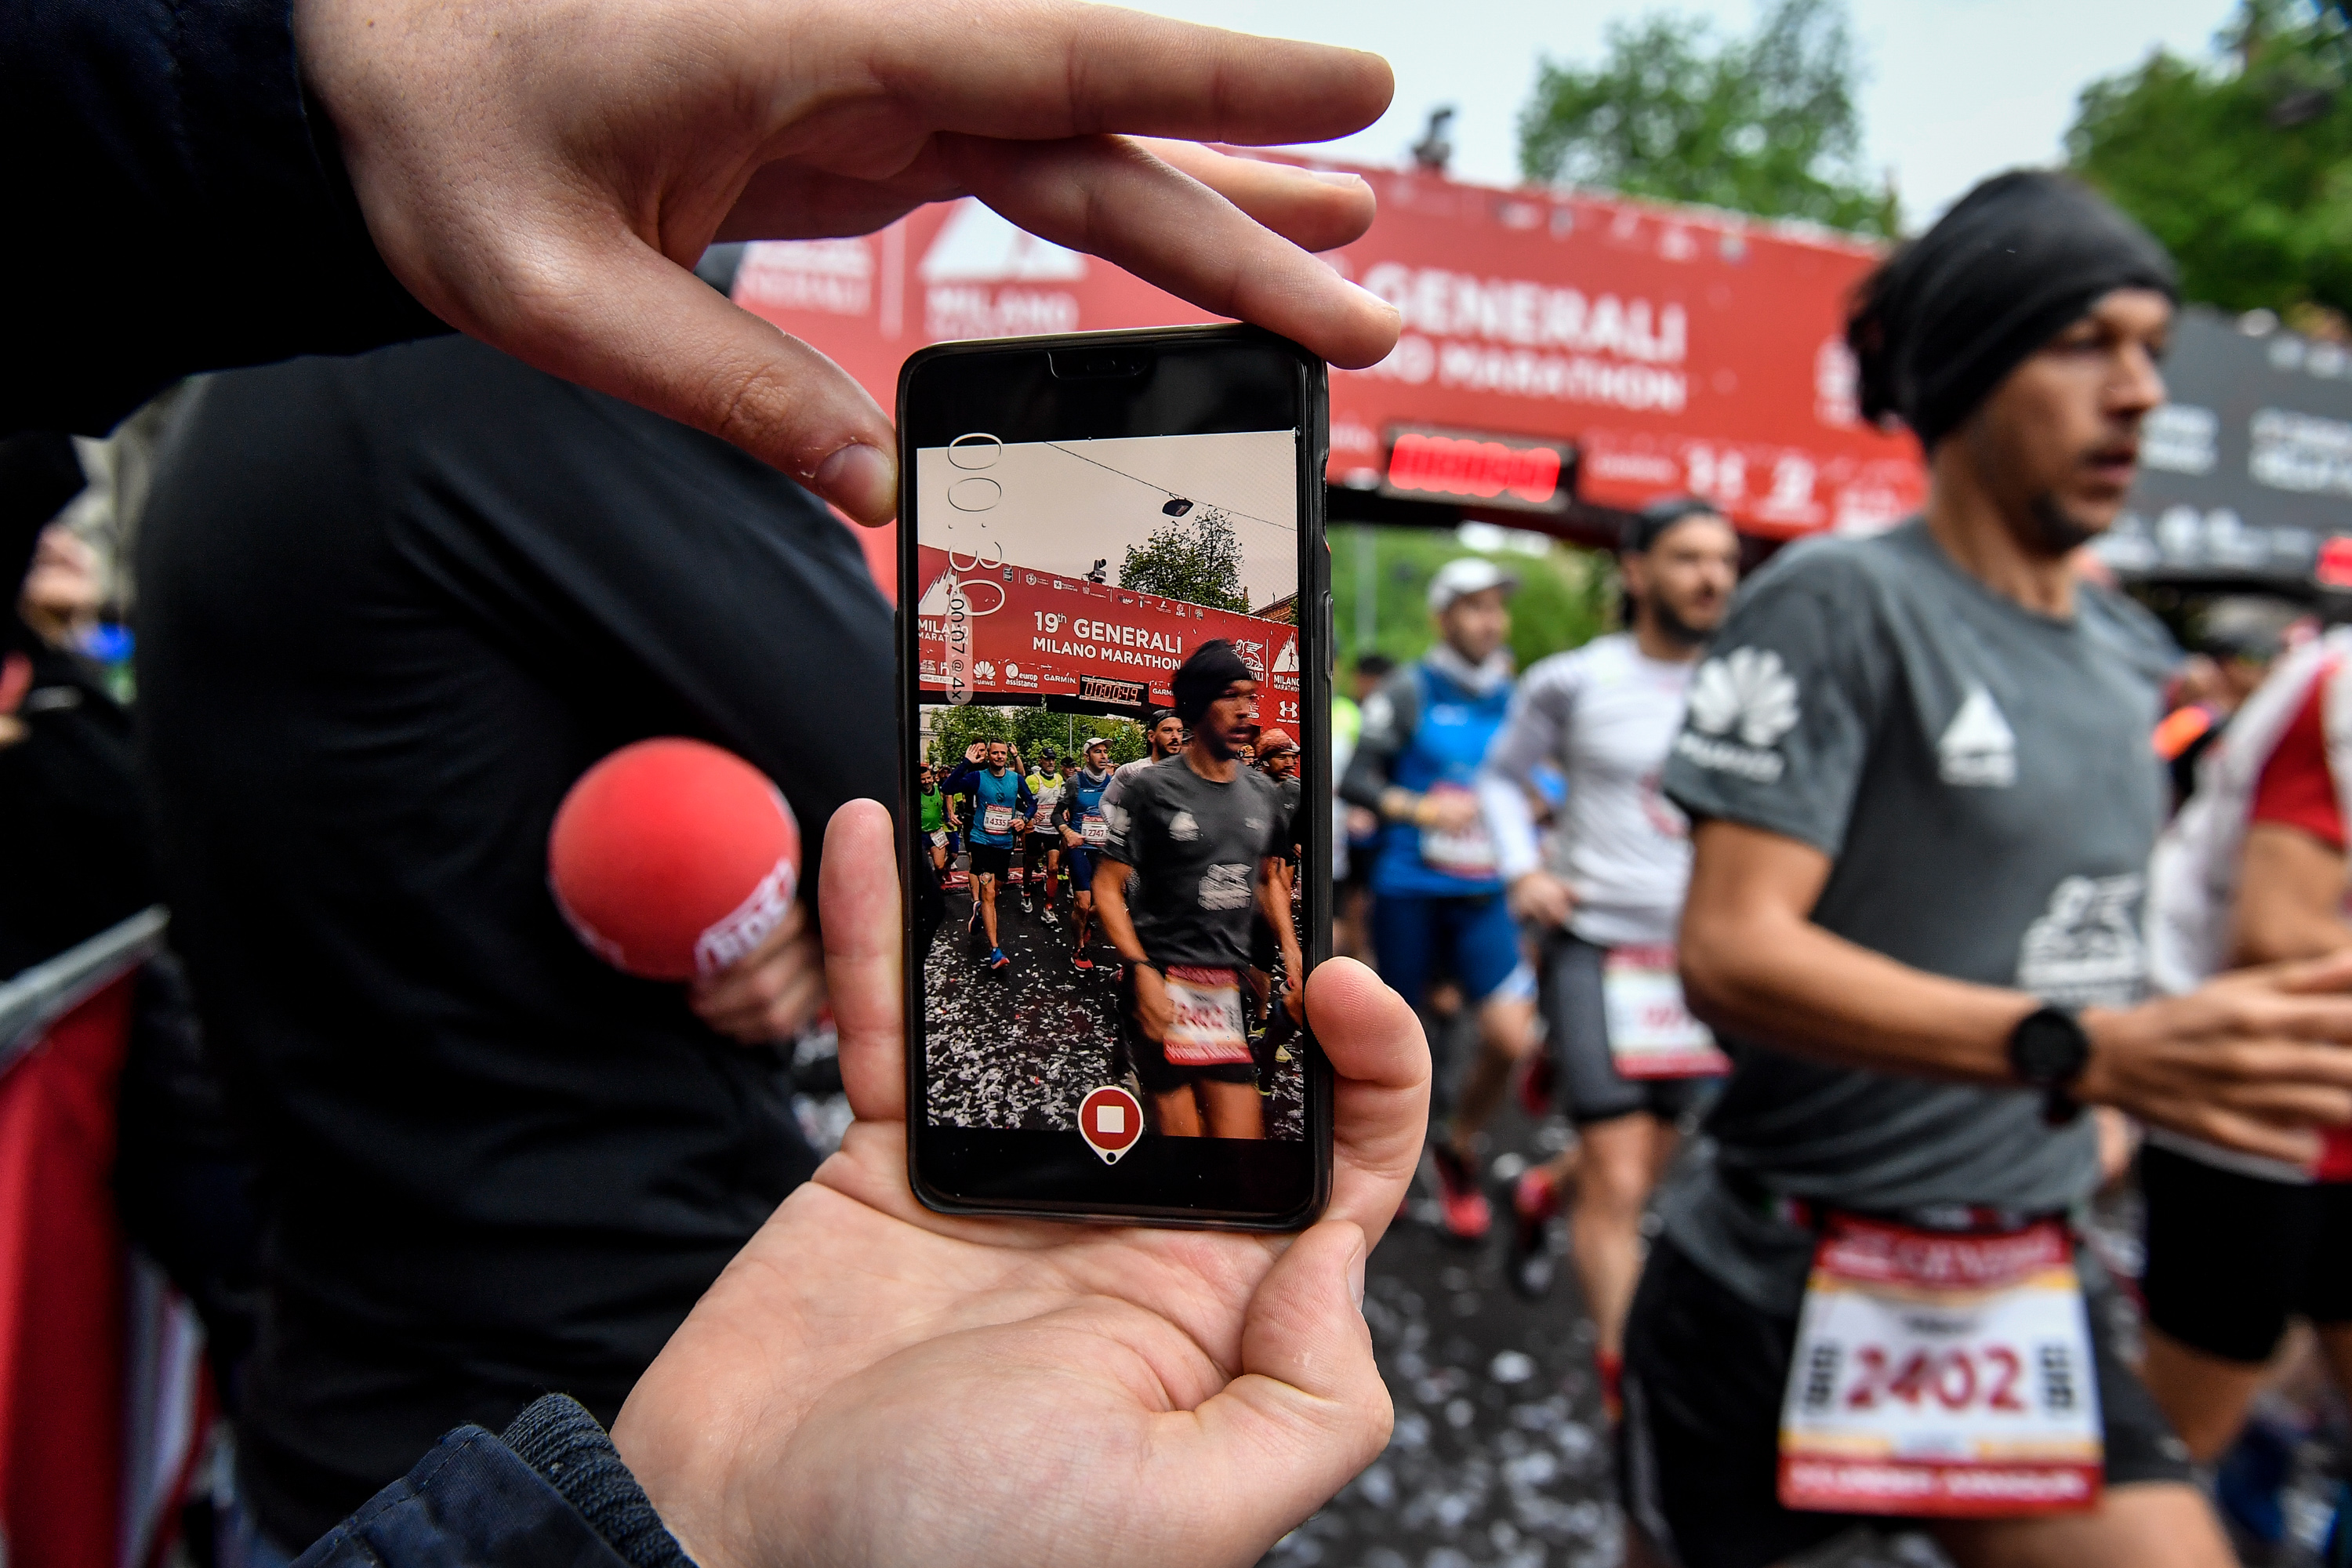 How to finalize your entry to the 2020 Generali Milano Marathon